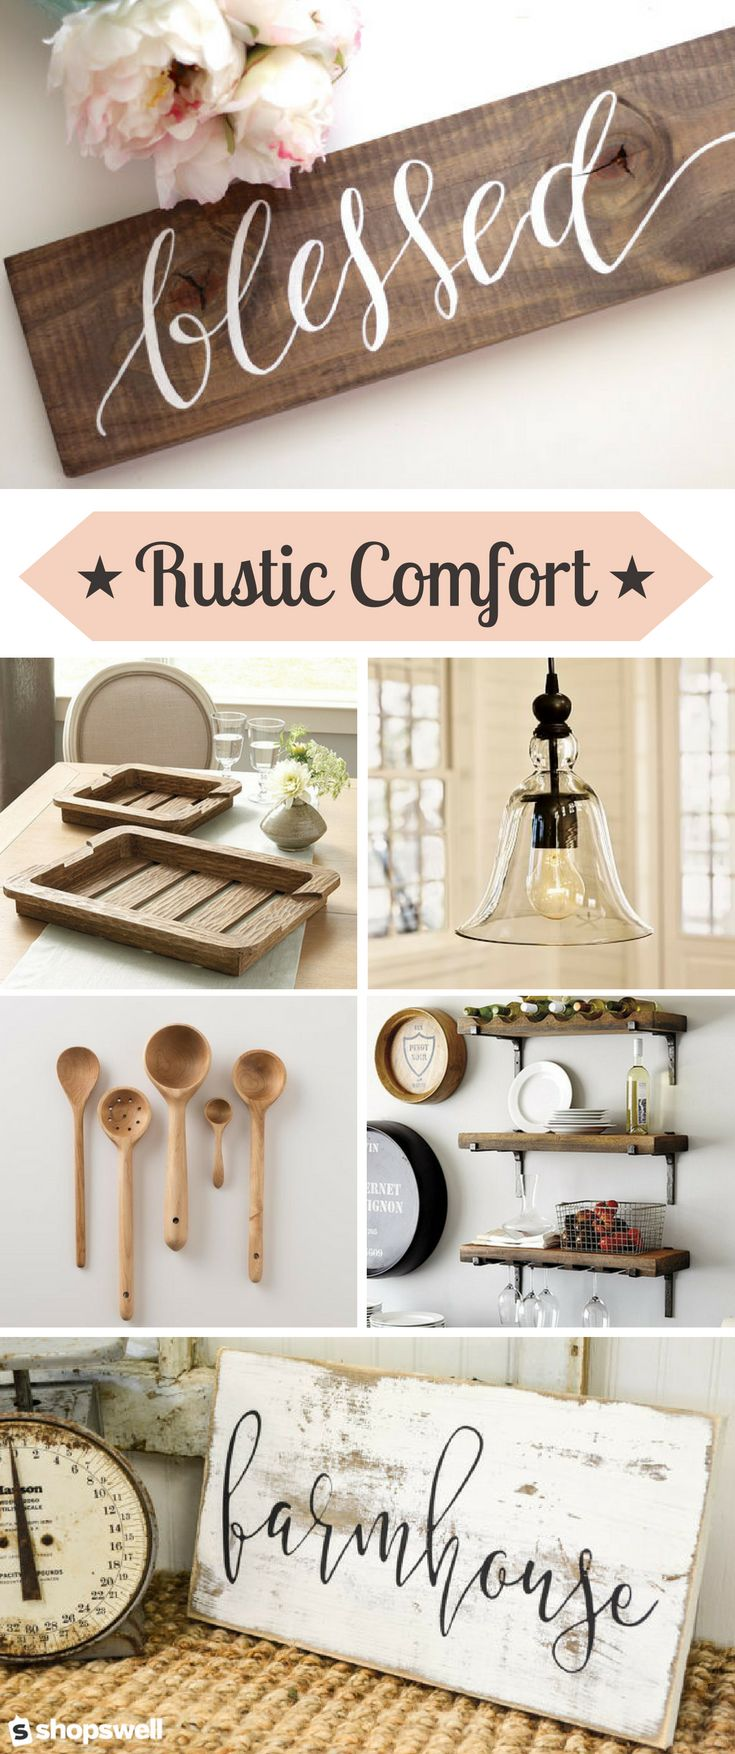 best 20 rustic country decor ideas on pinterest - Home Rustic Decor